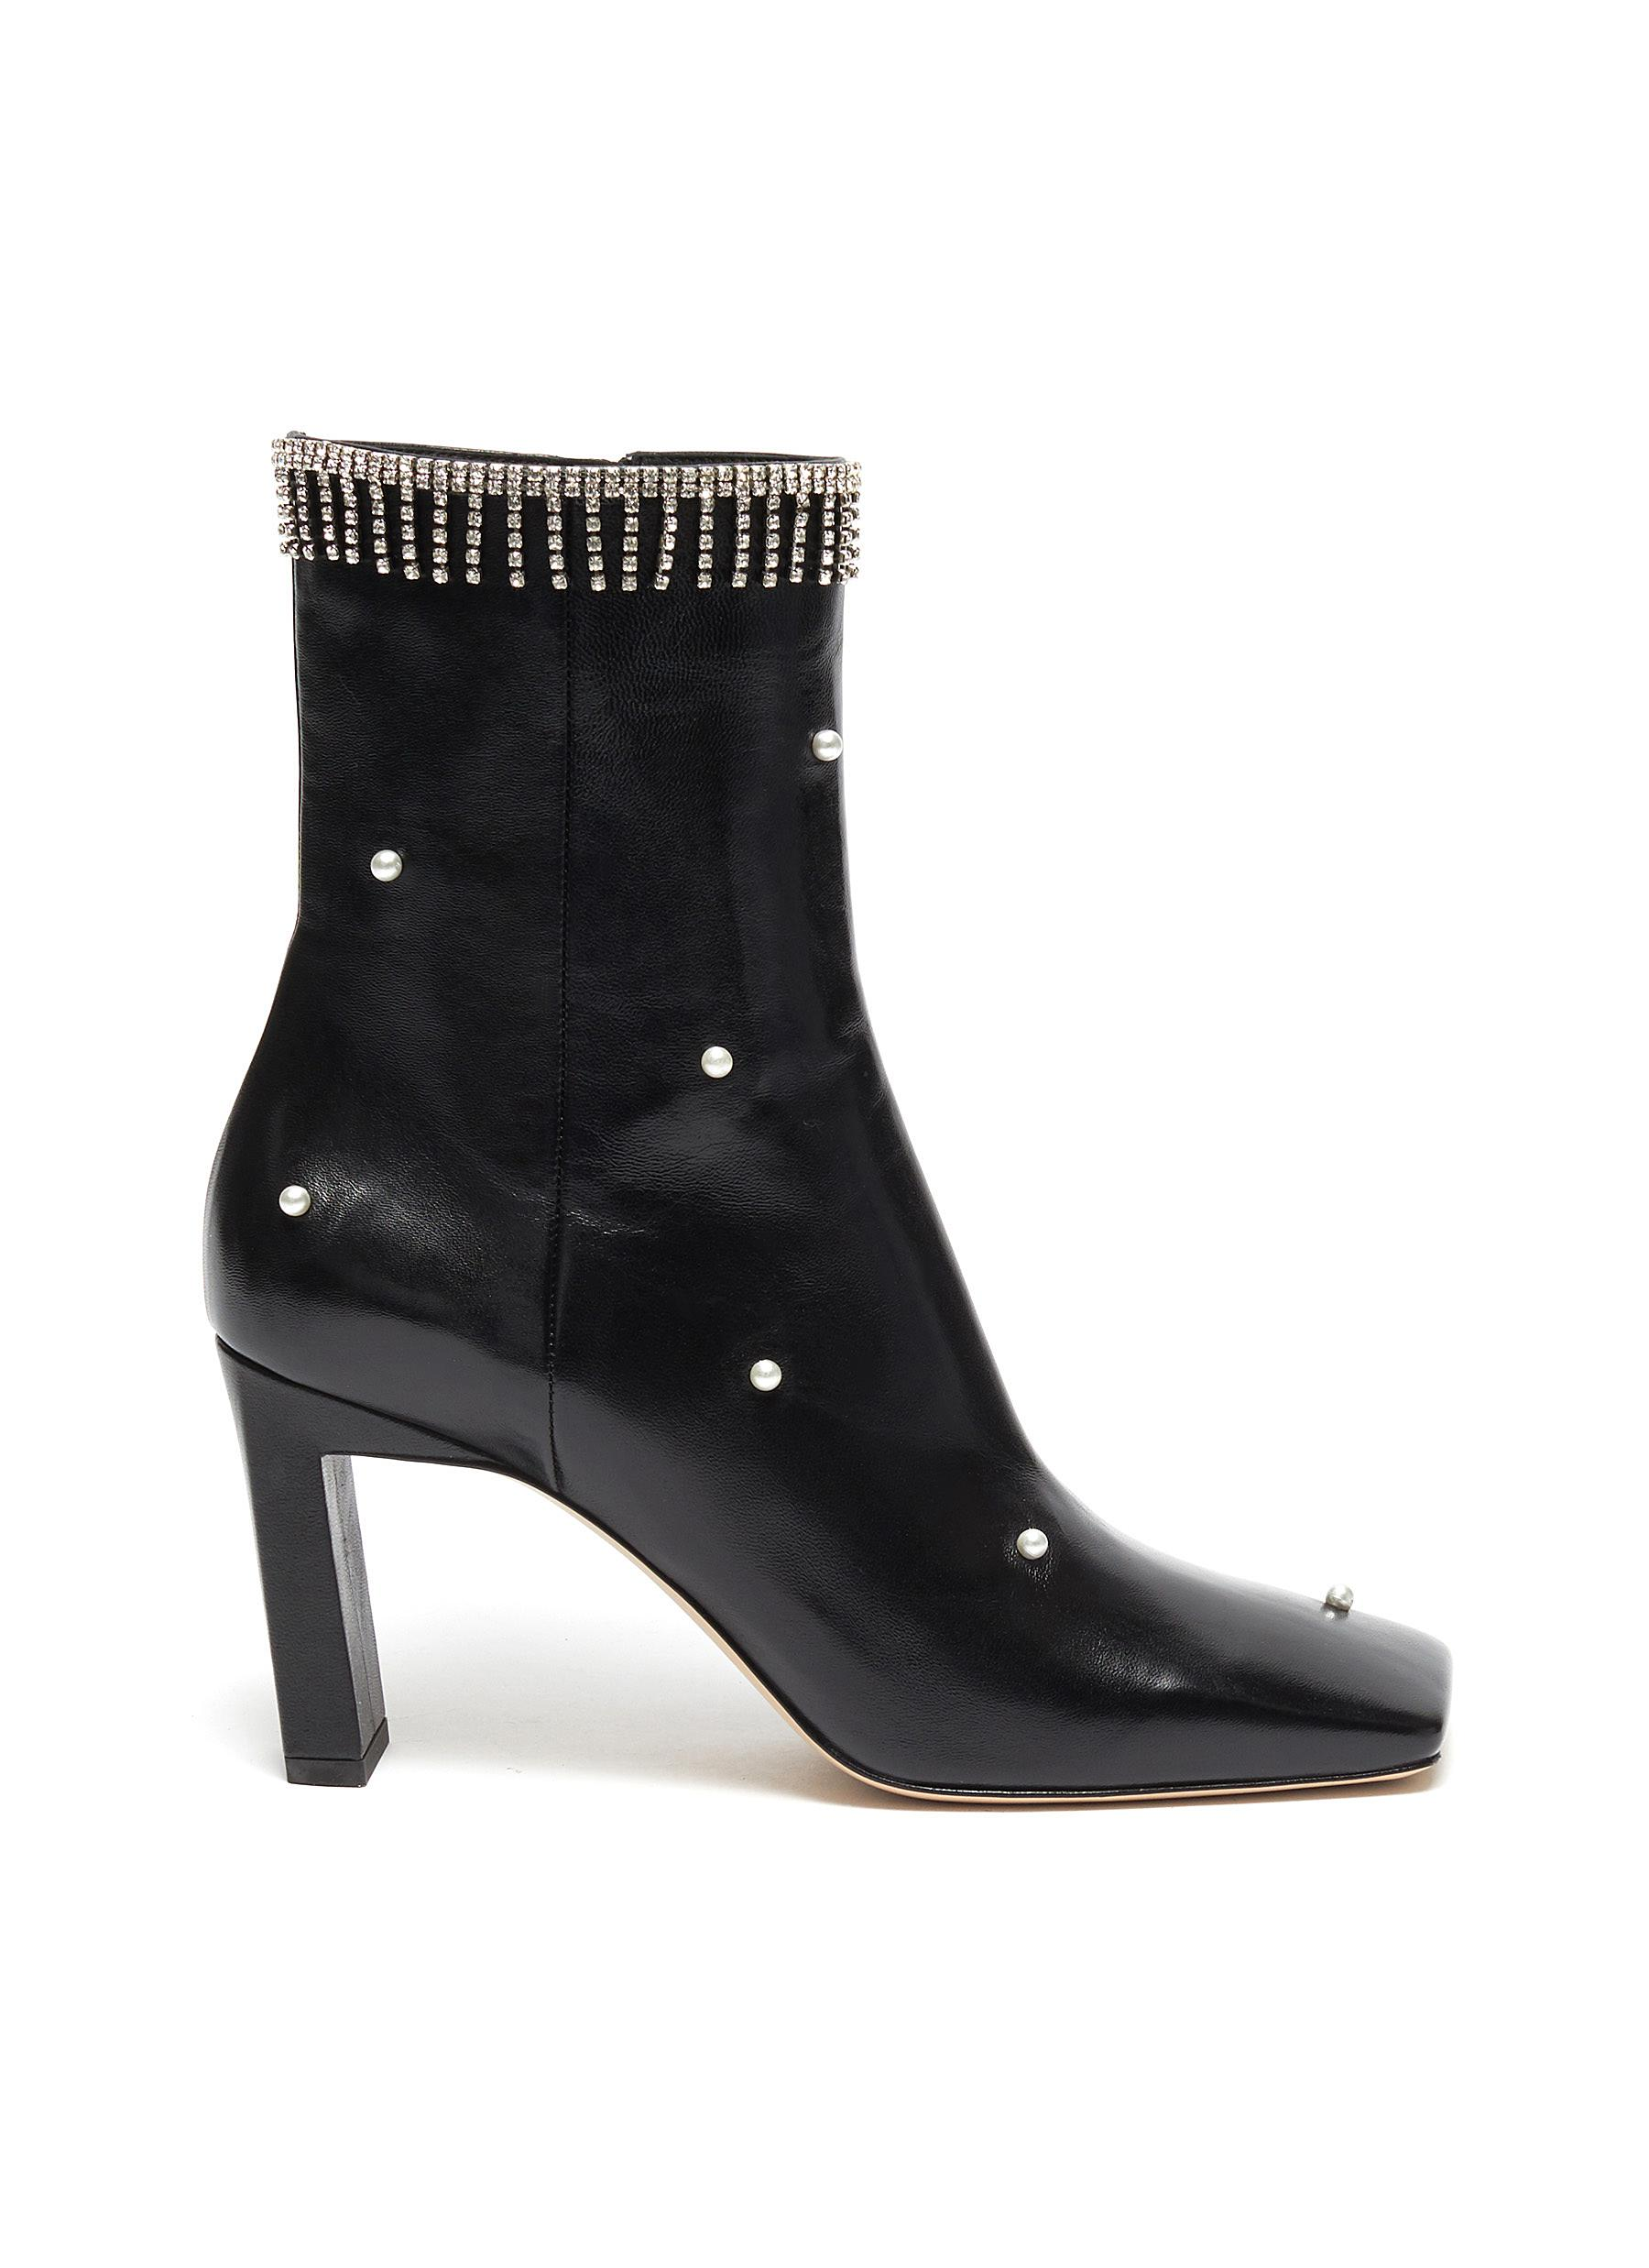 shop Wandler 'Isa' faux pearl strass fringe leather boots online